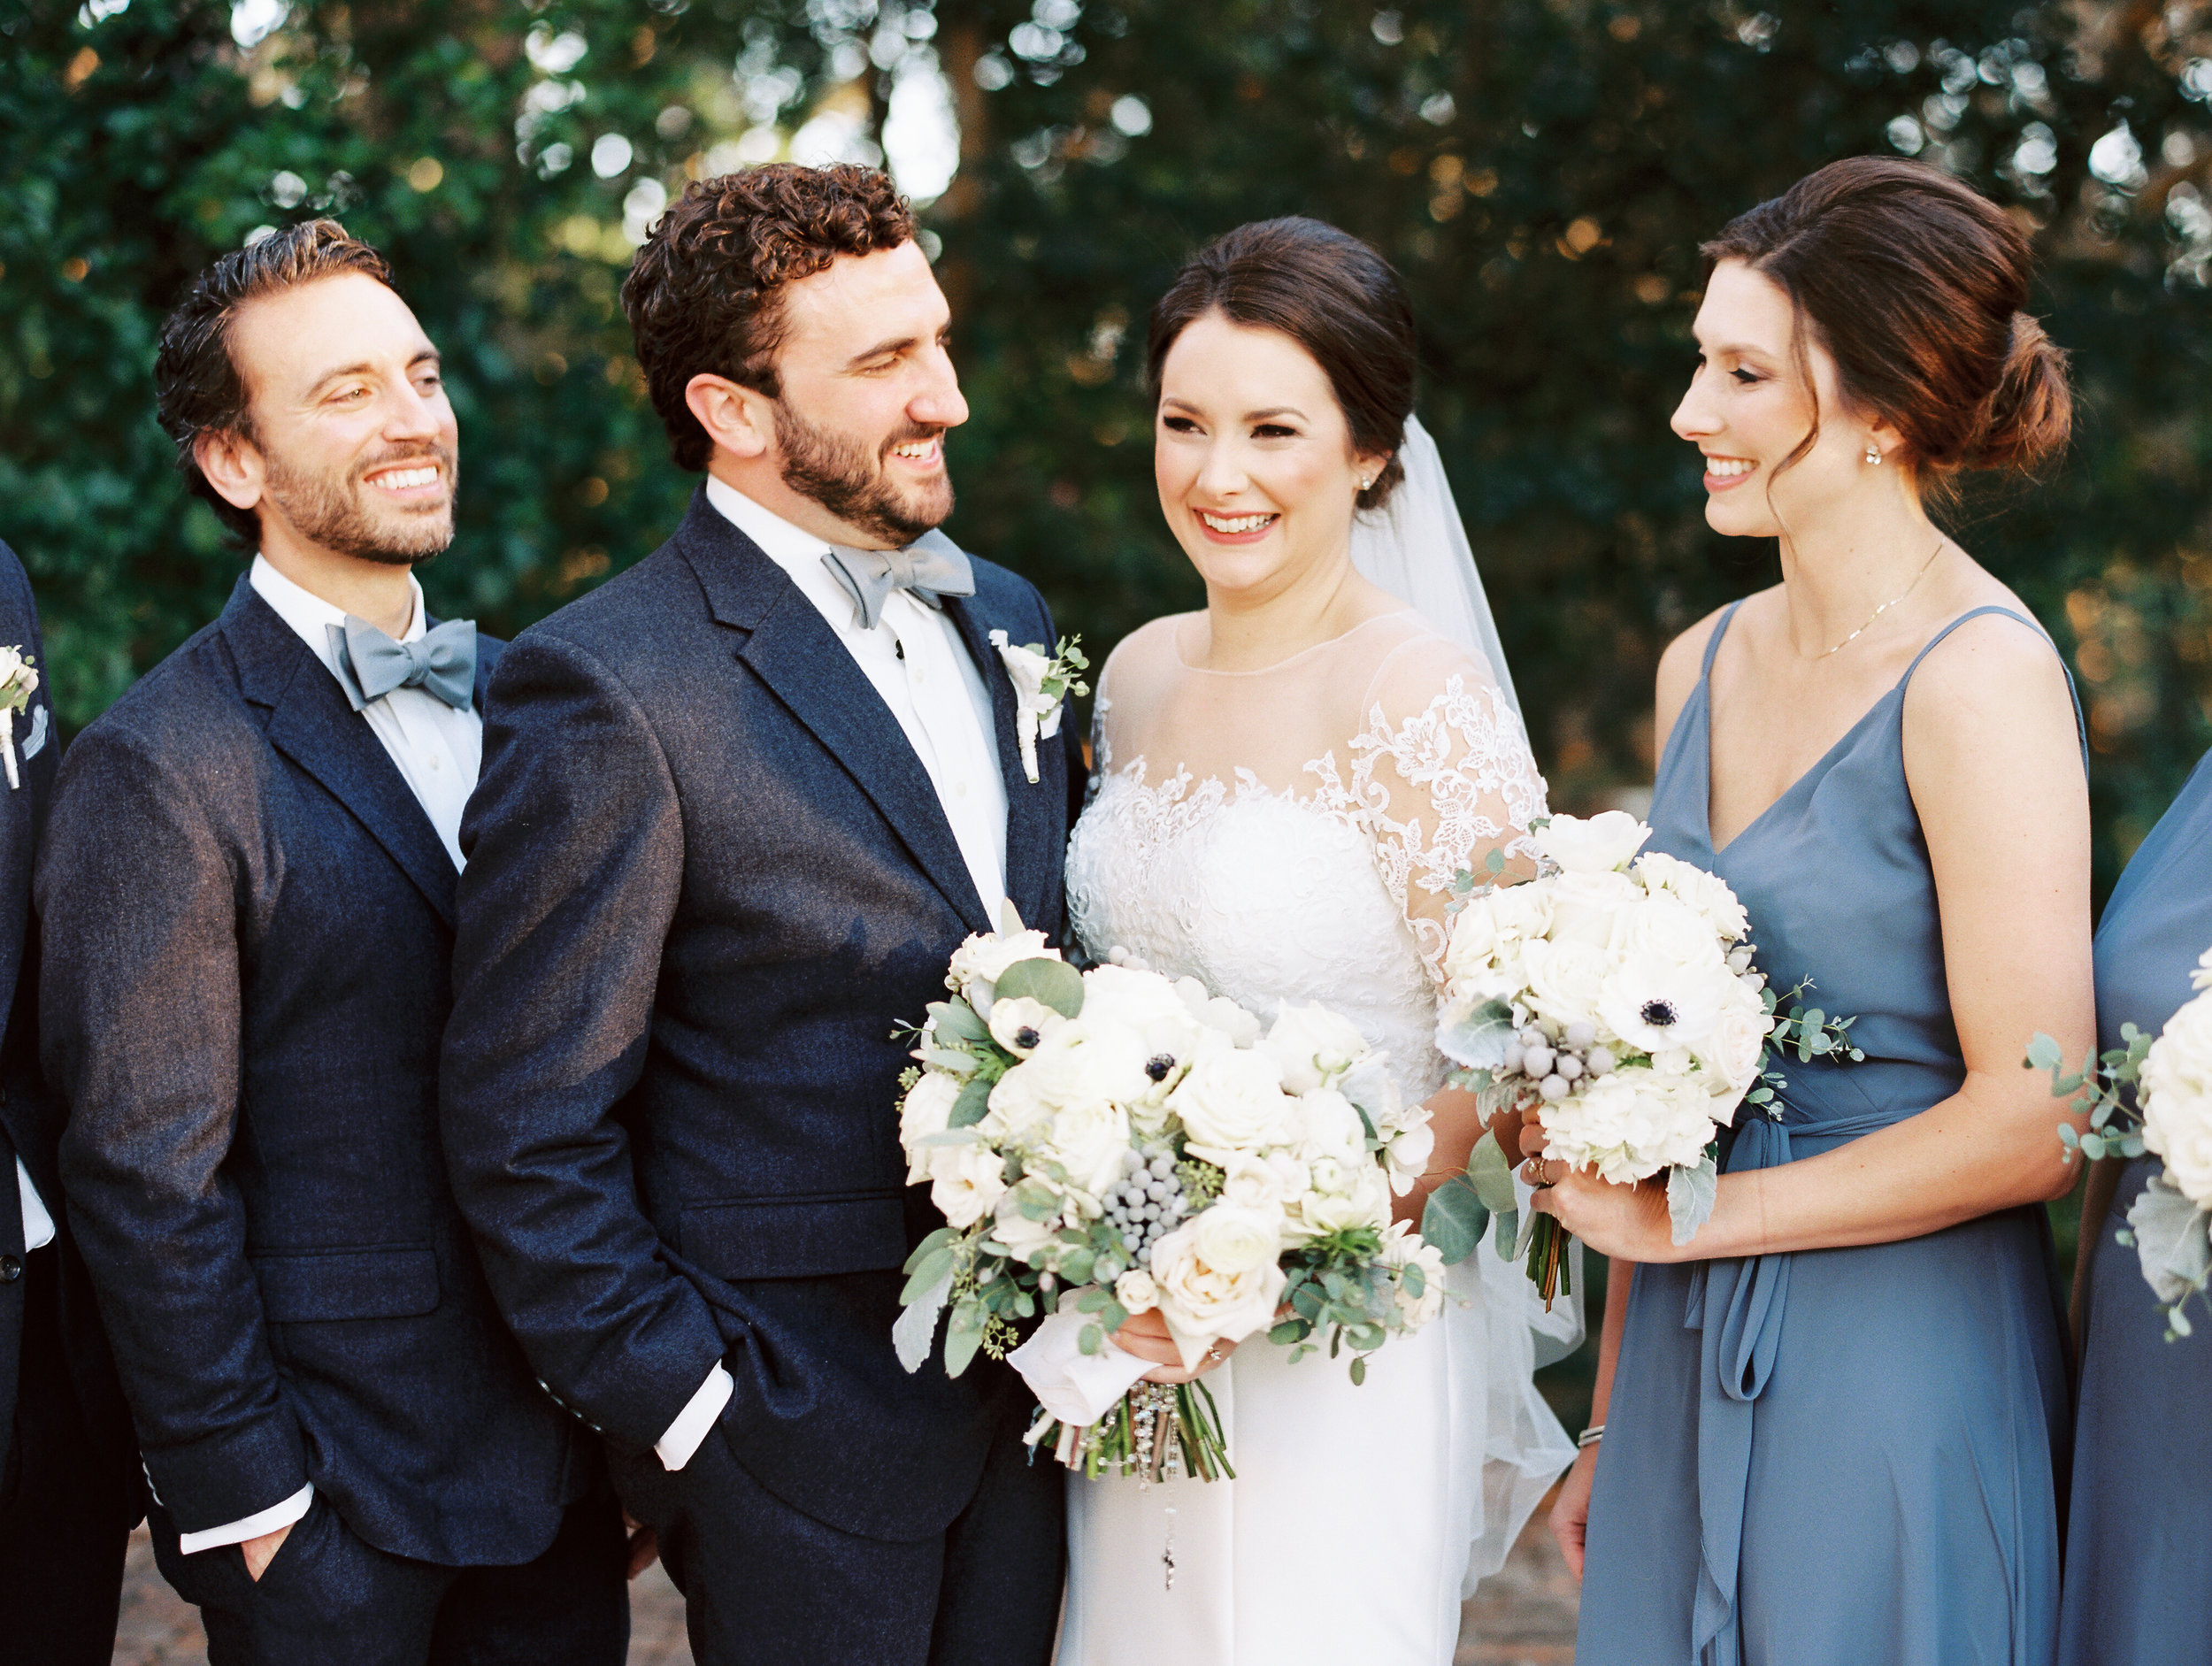 Southern Fete, Southern Wedding, Bride and Groom with Maid of Honor and Best Man, Sarah Beth Photography, Petals and Pots